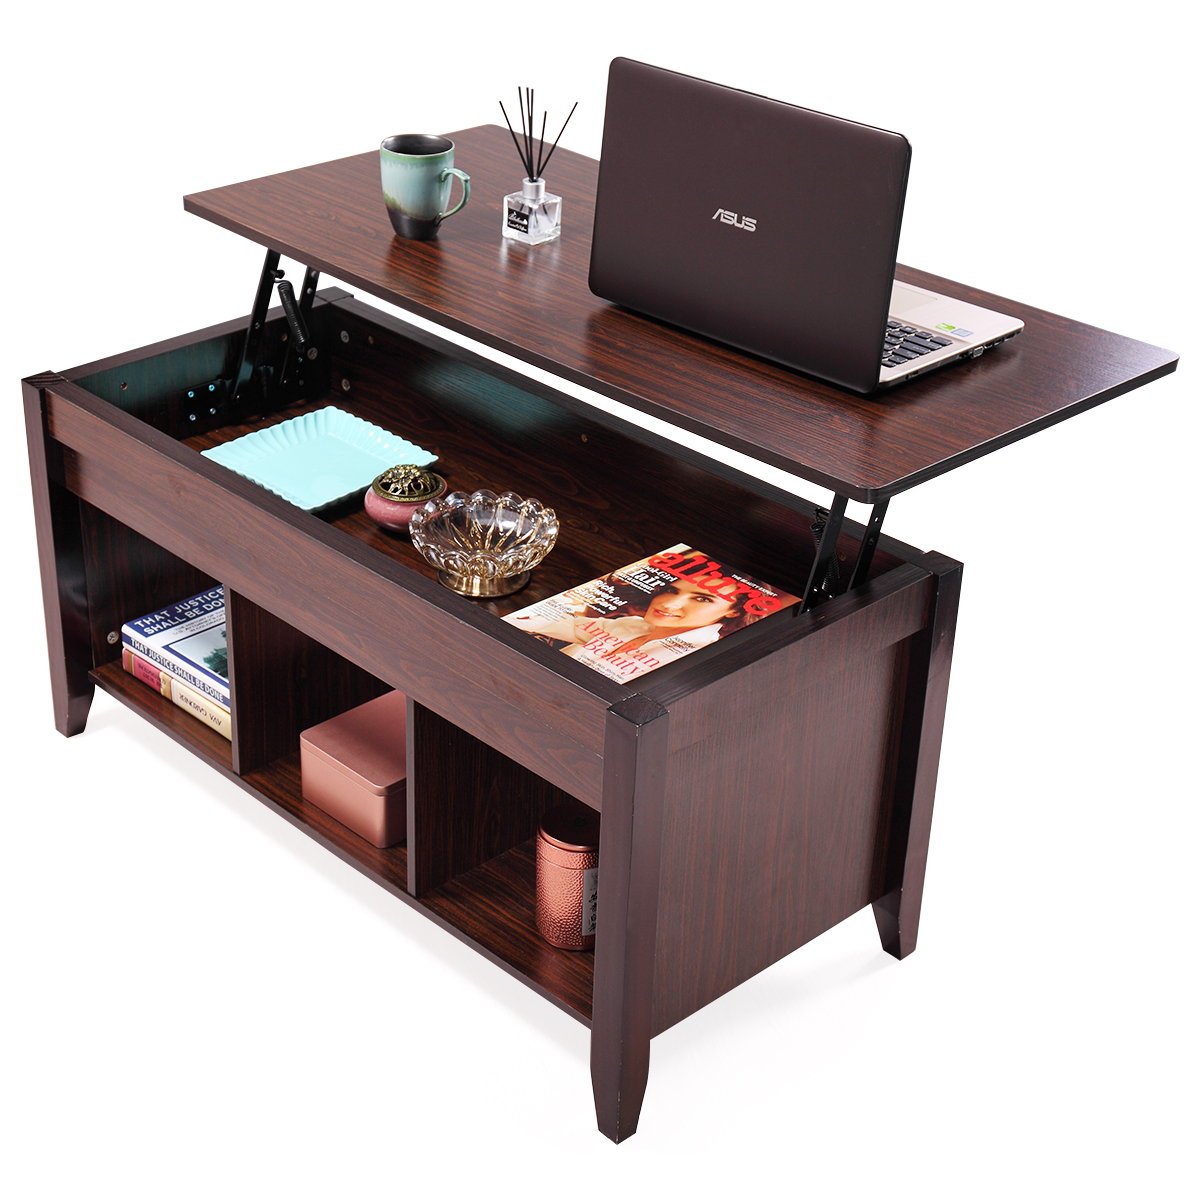 Lazymoon Lift Top Coffee Table Laptop Desk Storage Compartment Solid Wood  Home Furniture, Walnut Brown